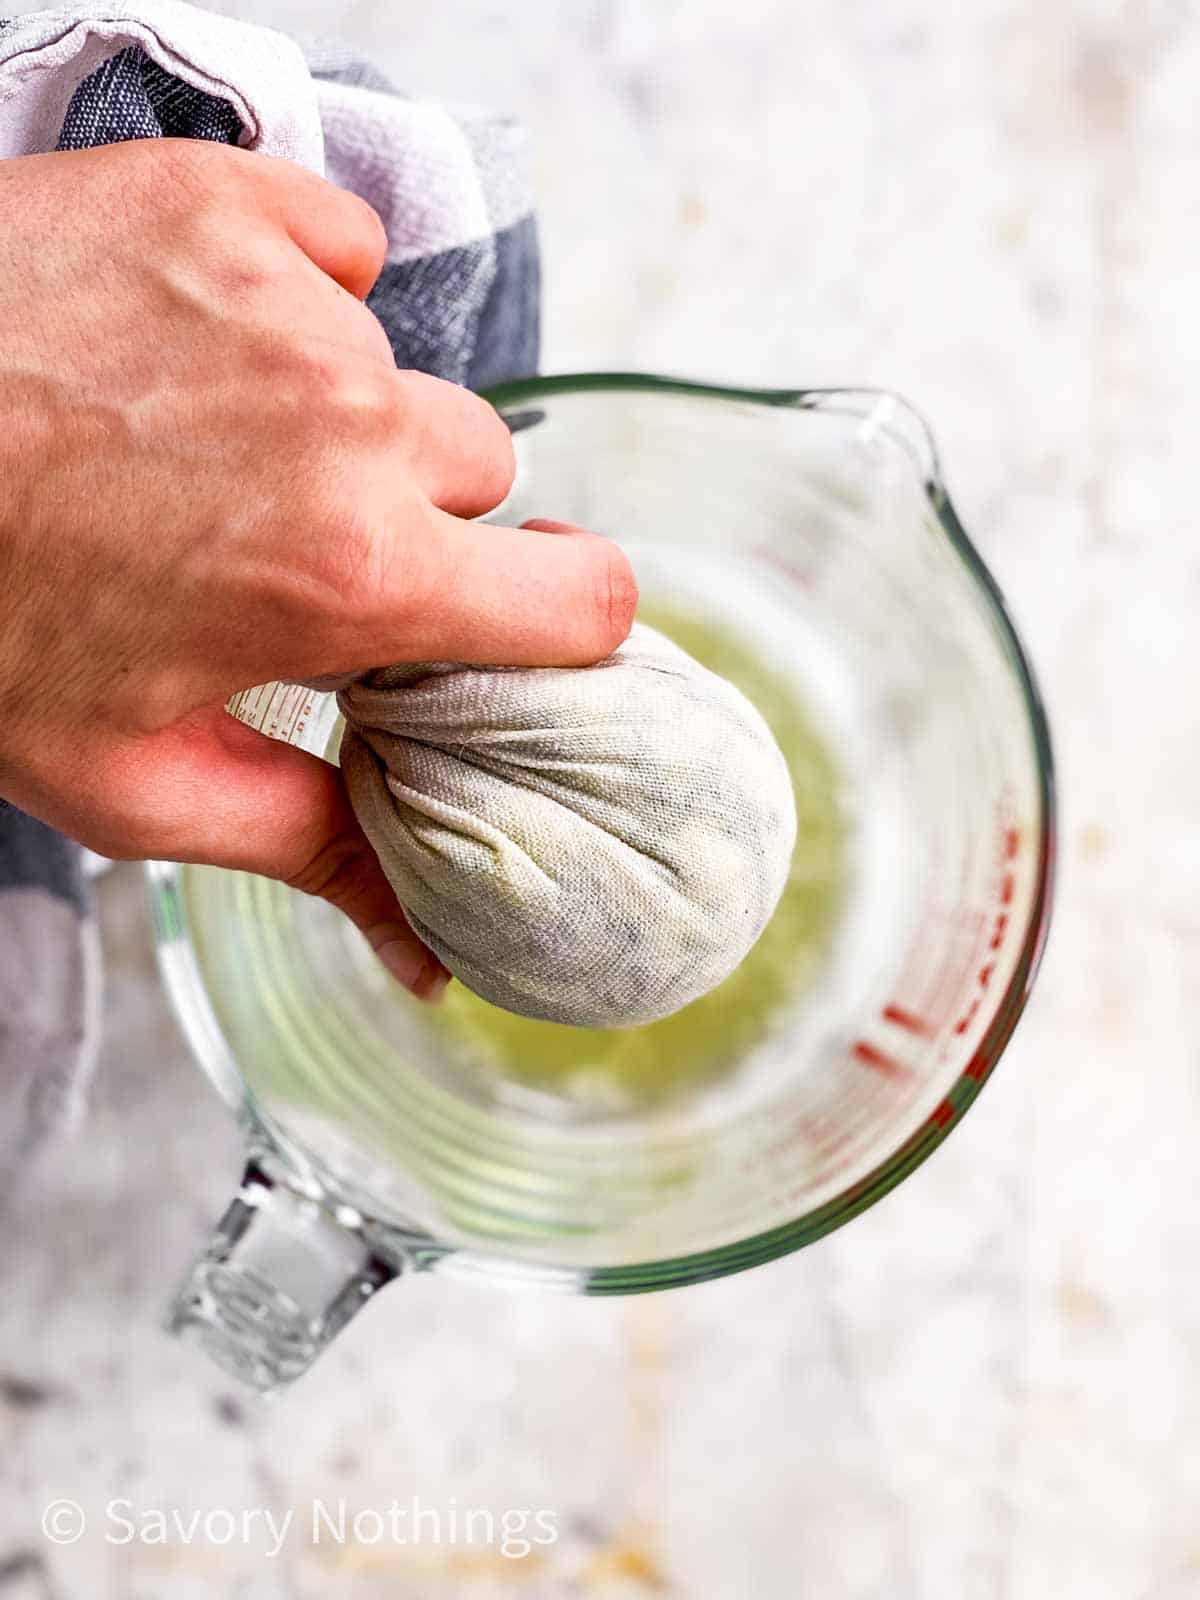 female hand squeezing zucchini in white kitchen towel over glass measuring jug